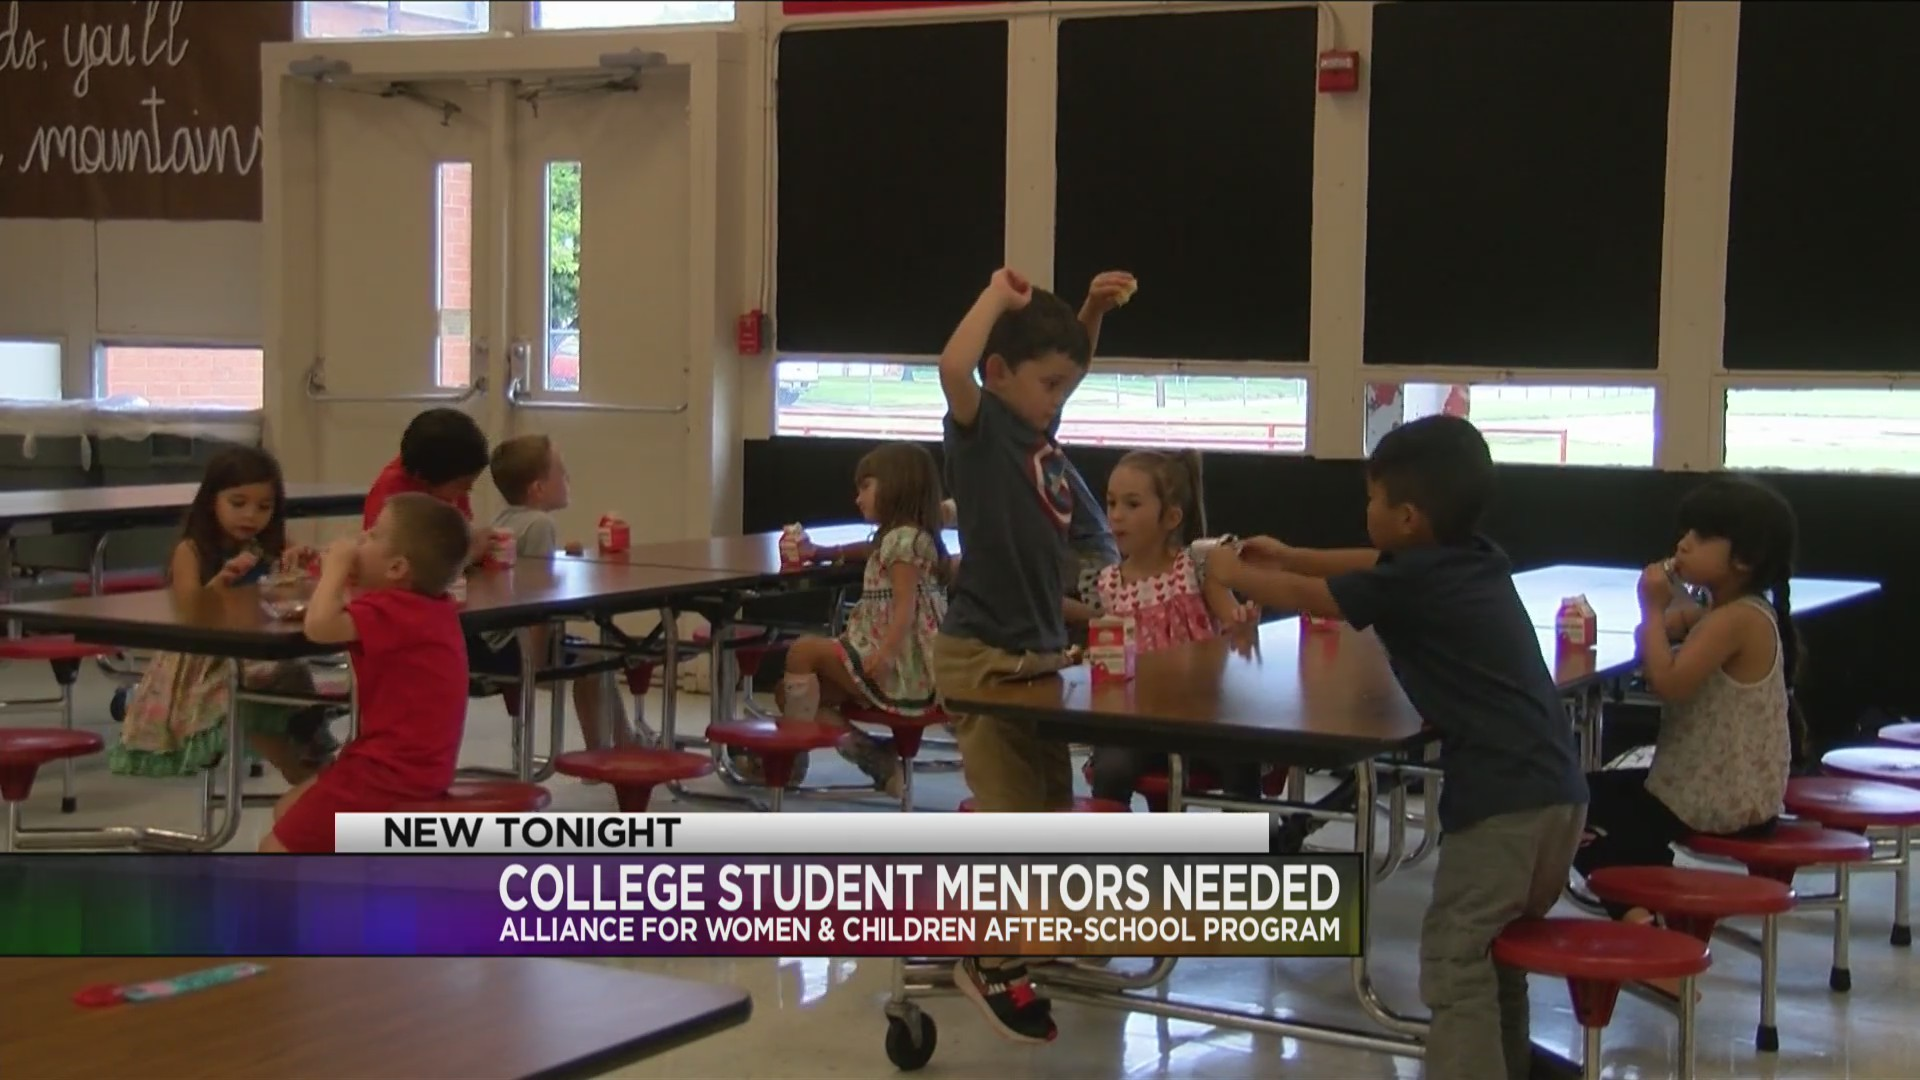 Alliance for Women and Children's after school program creating escape for college students